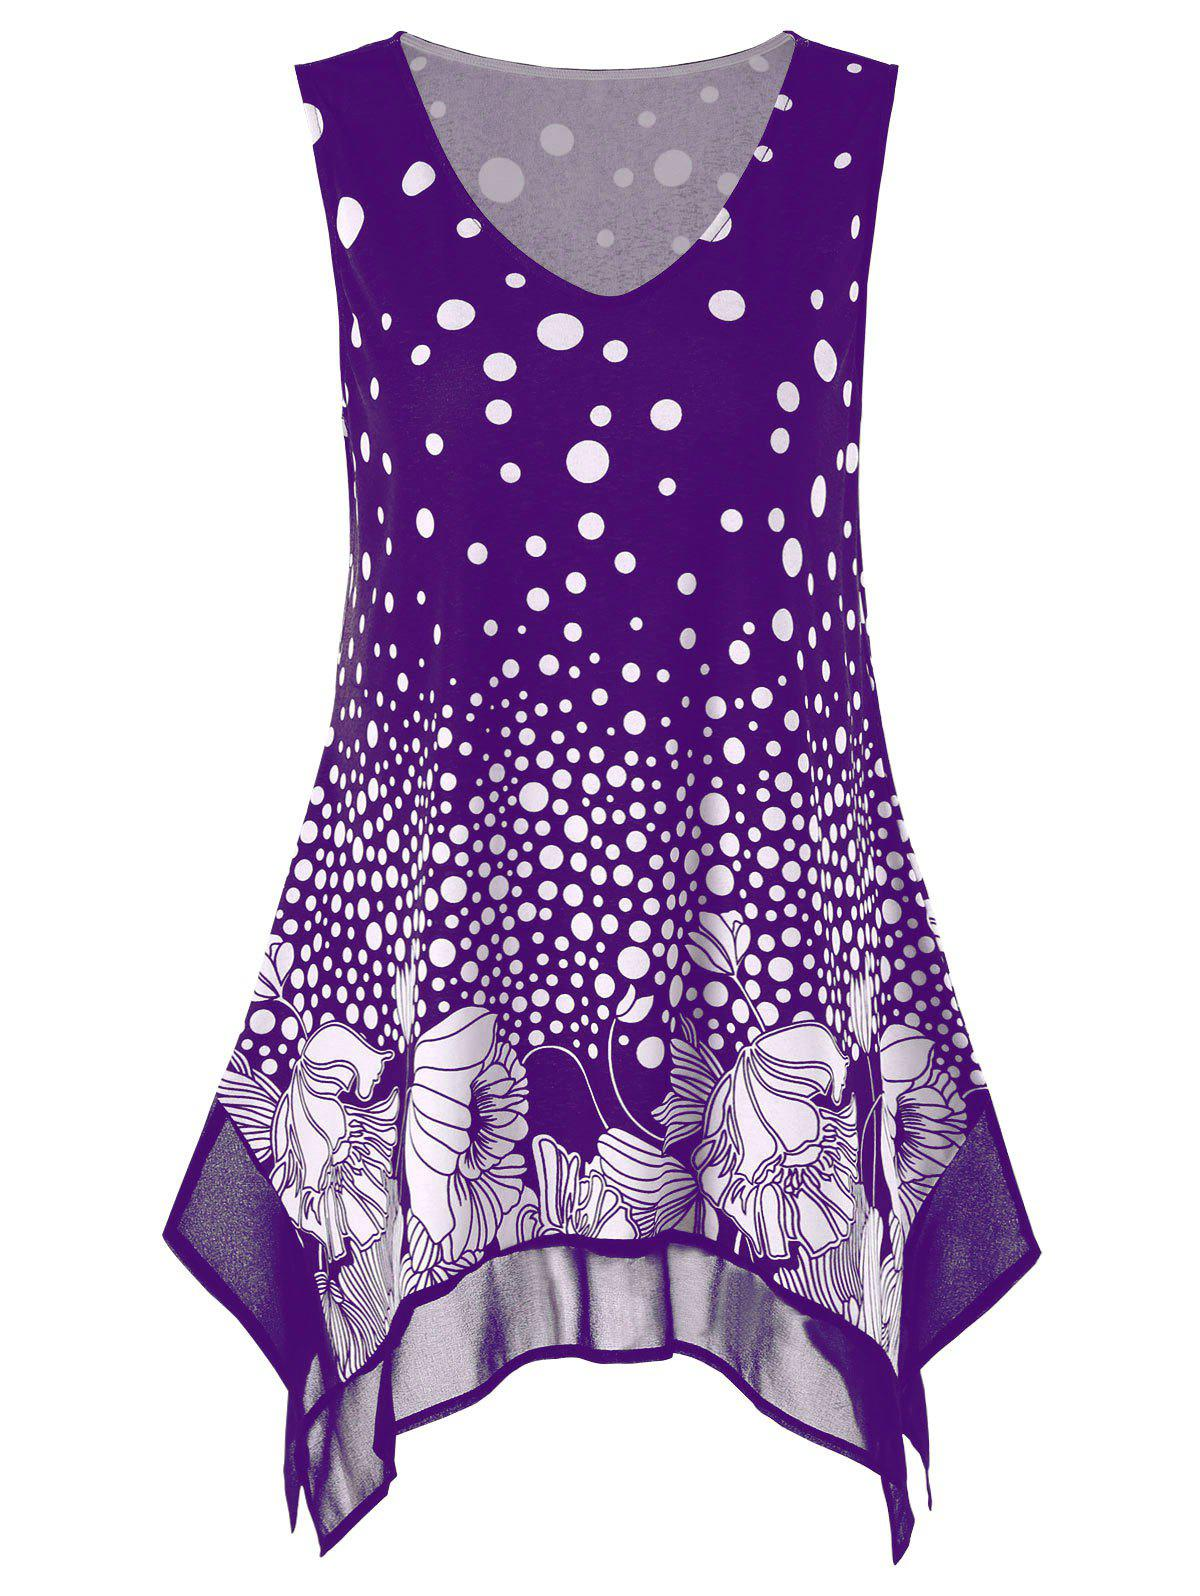 Plus Size Polka Dot Floral Tunic Tank Top, Purple